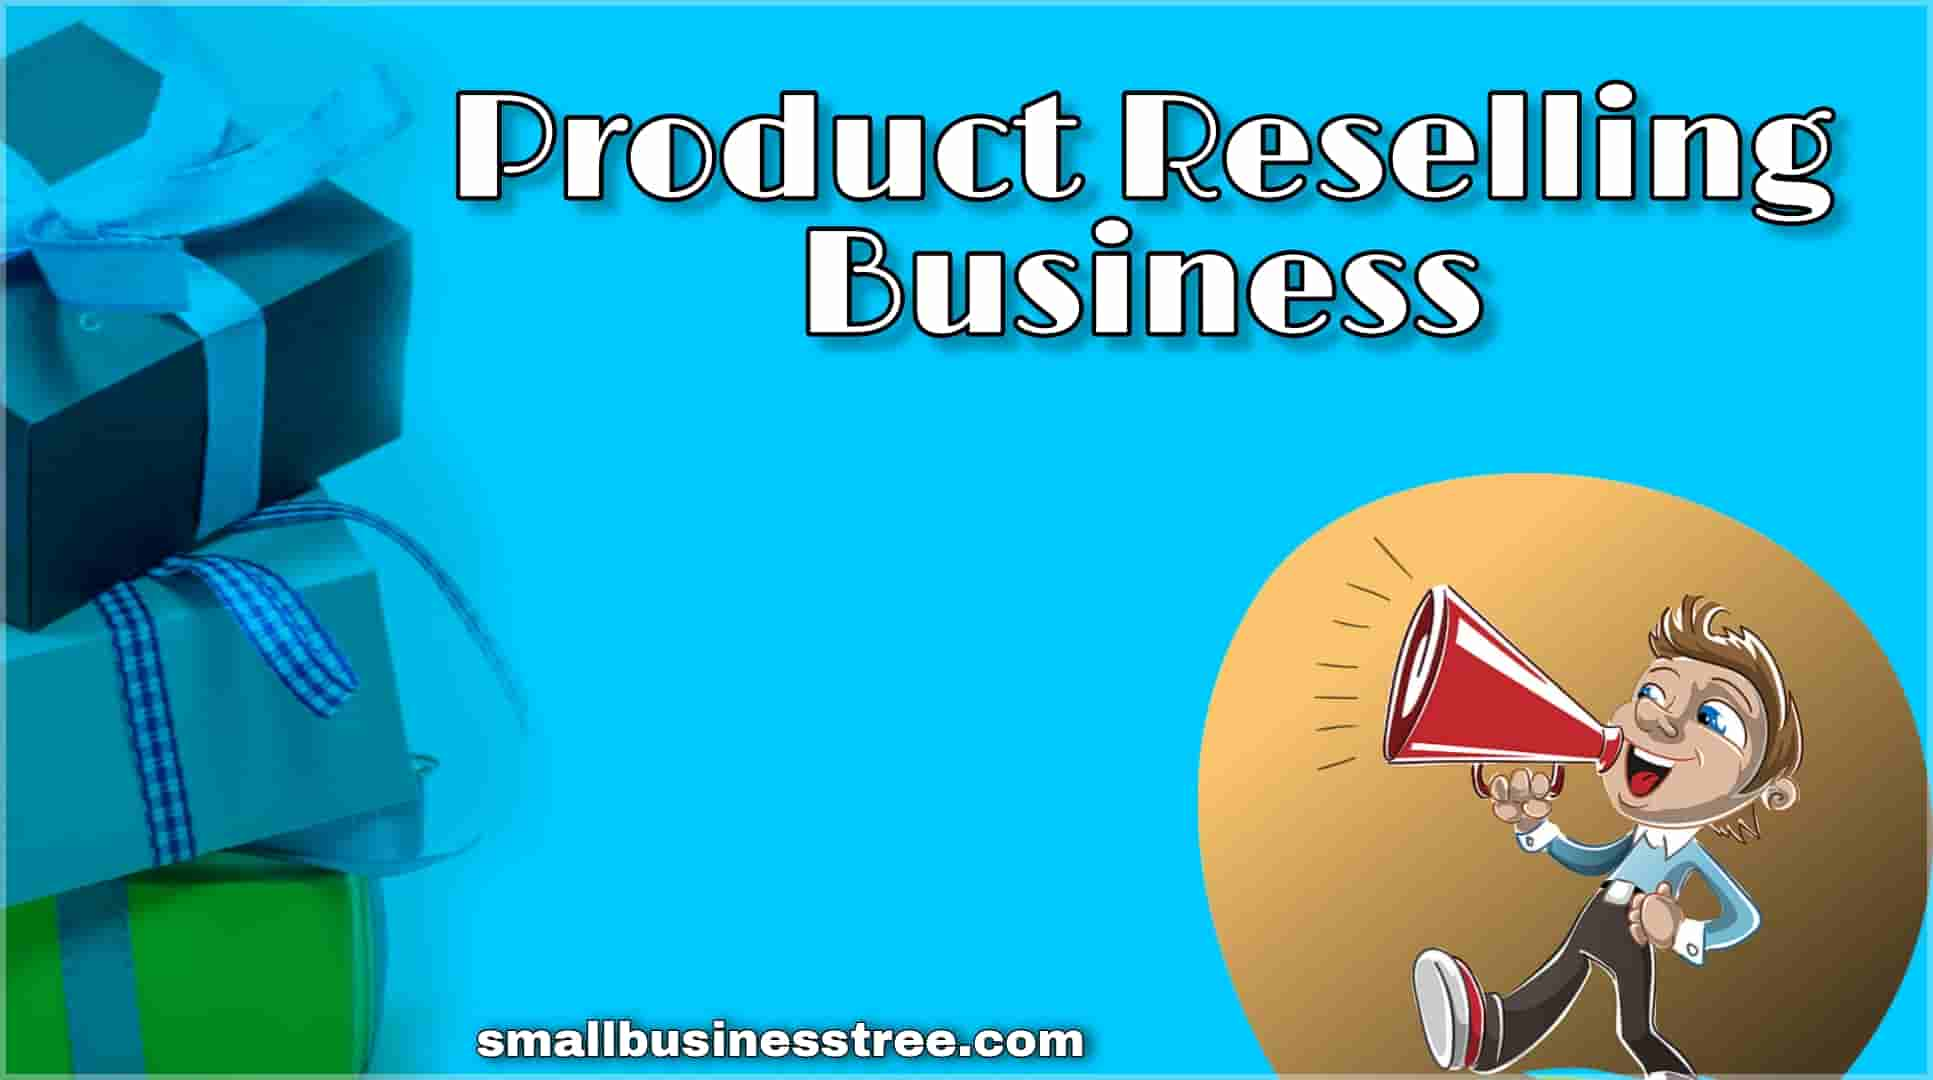 Product Reselling Business